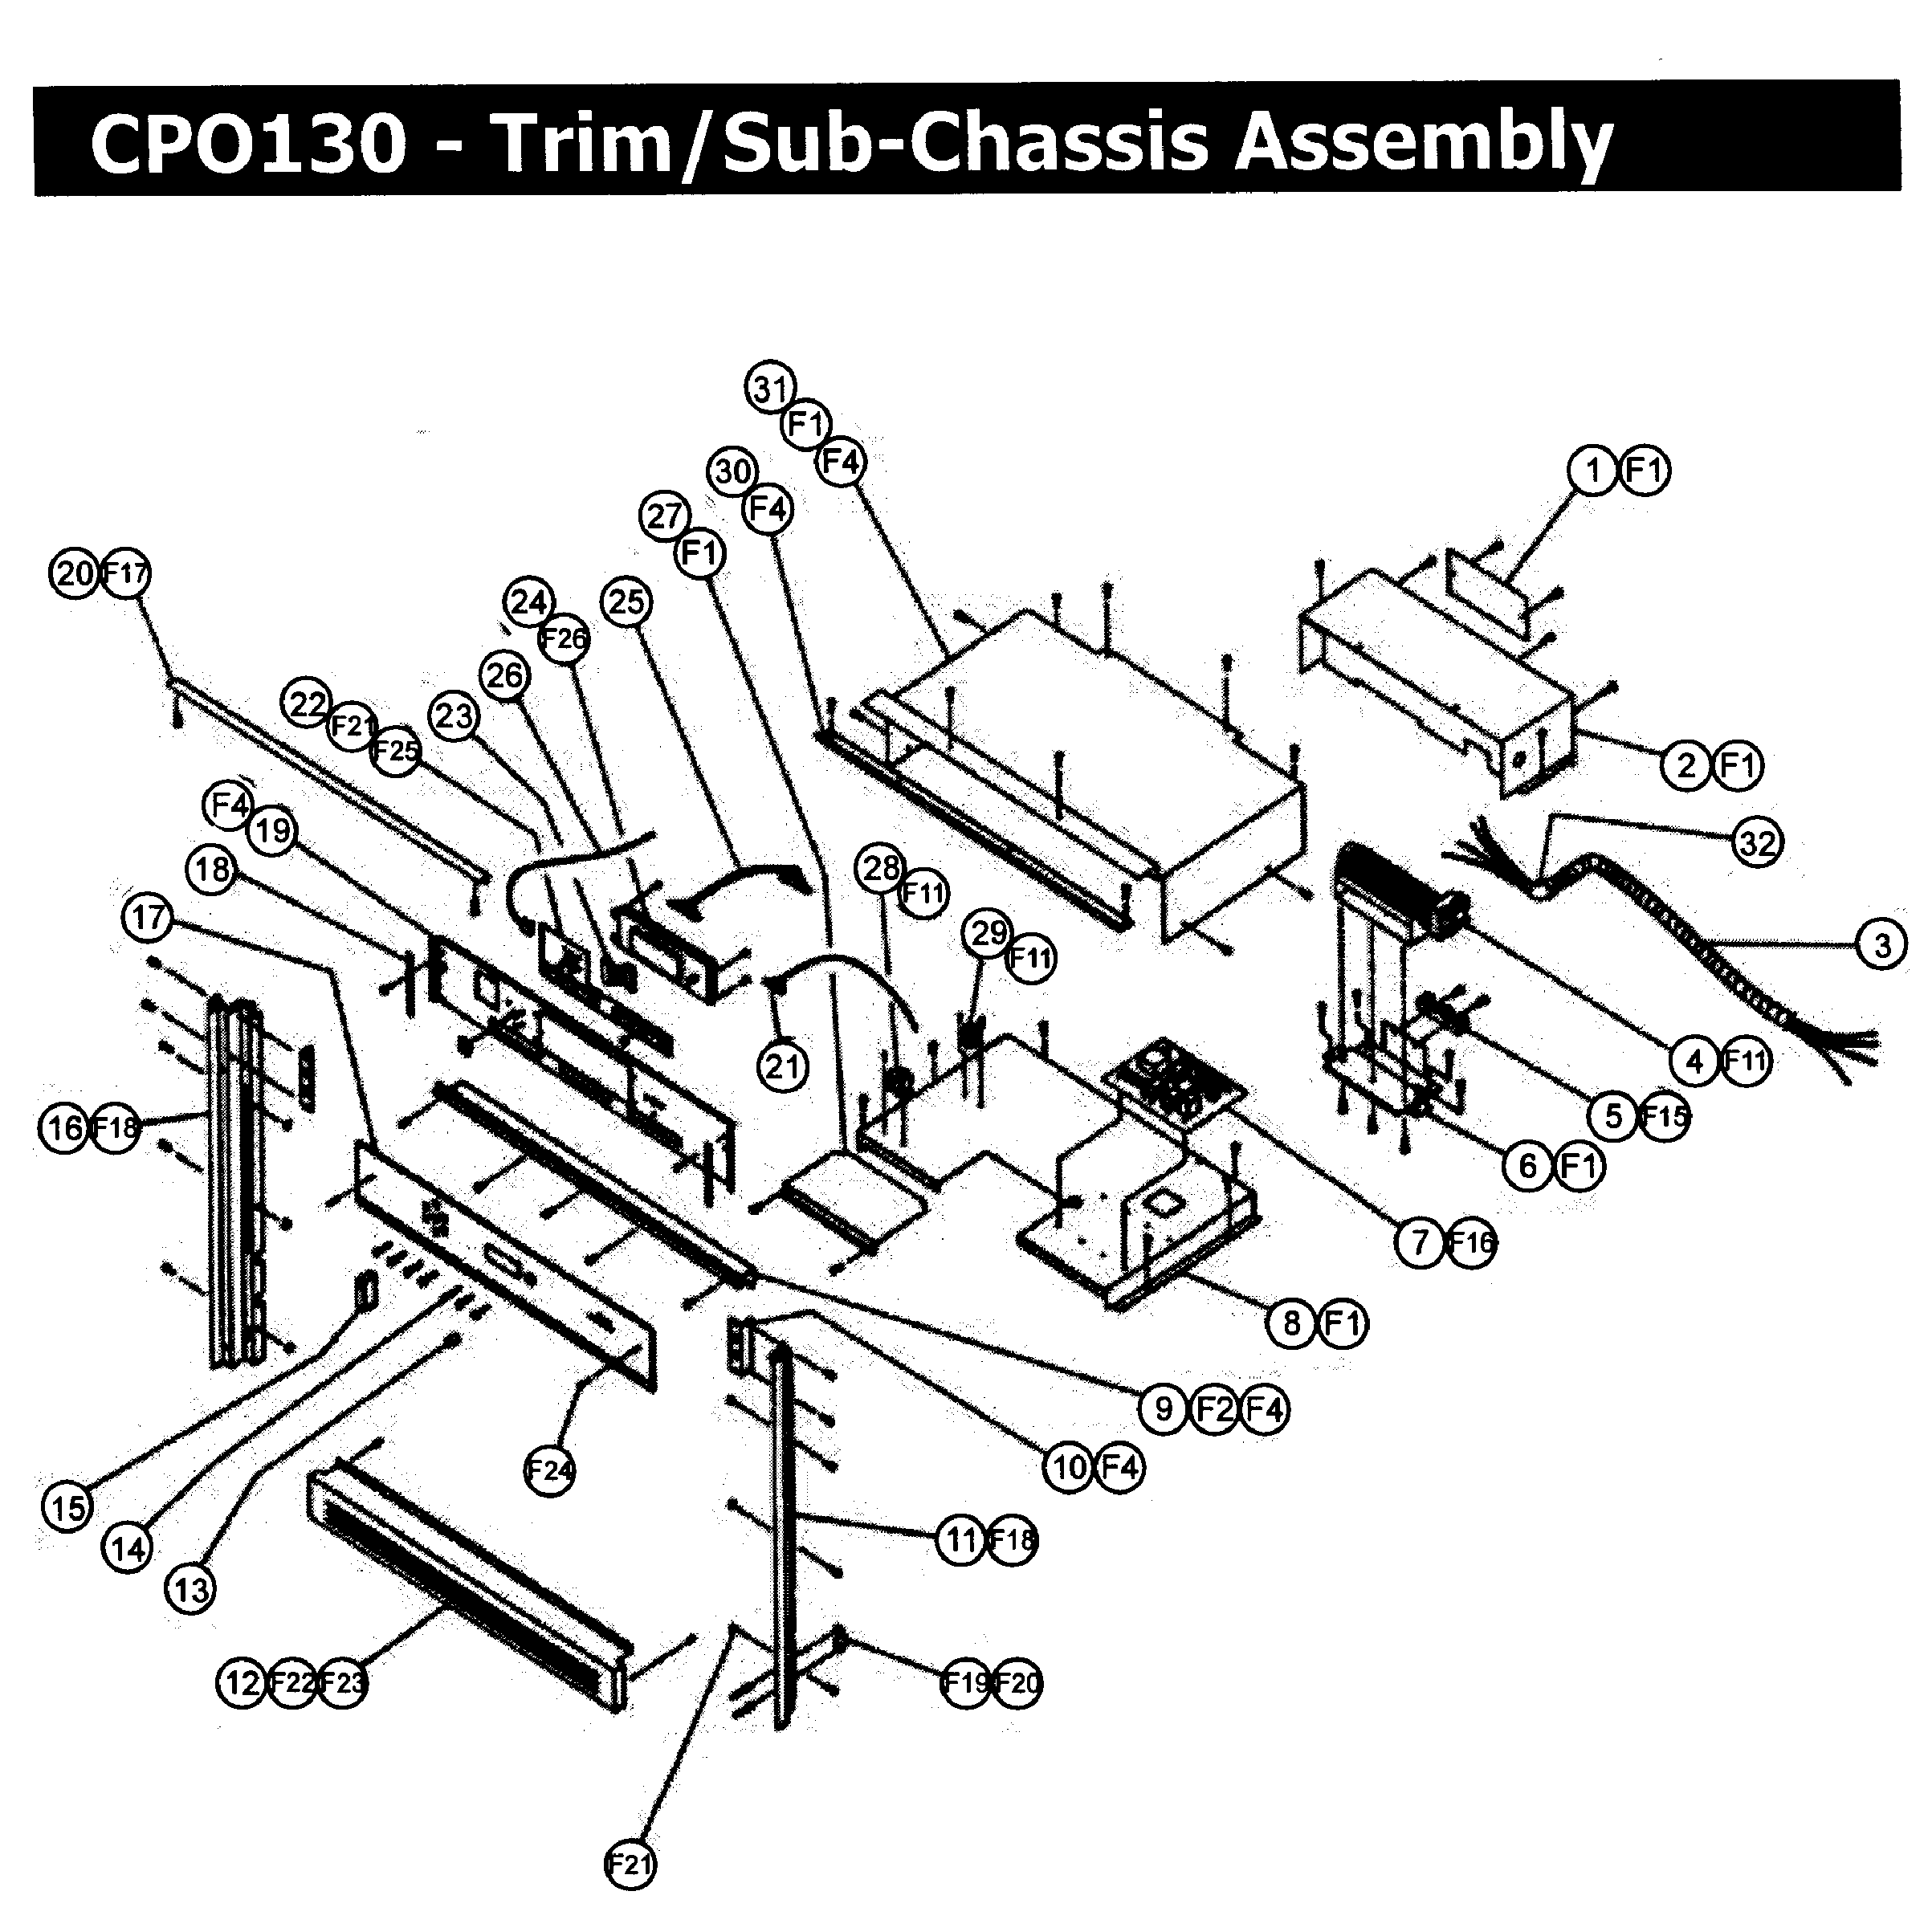 CPO130 Wall Oven Trim assy Parts diagram